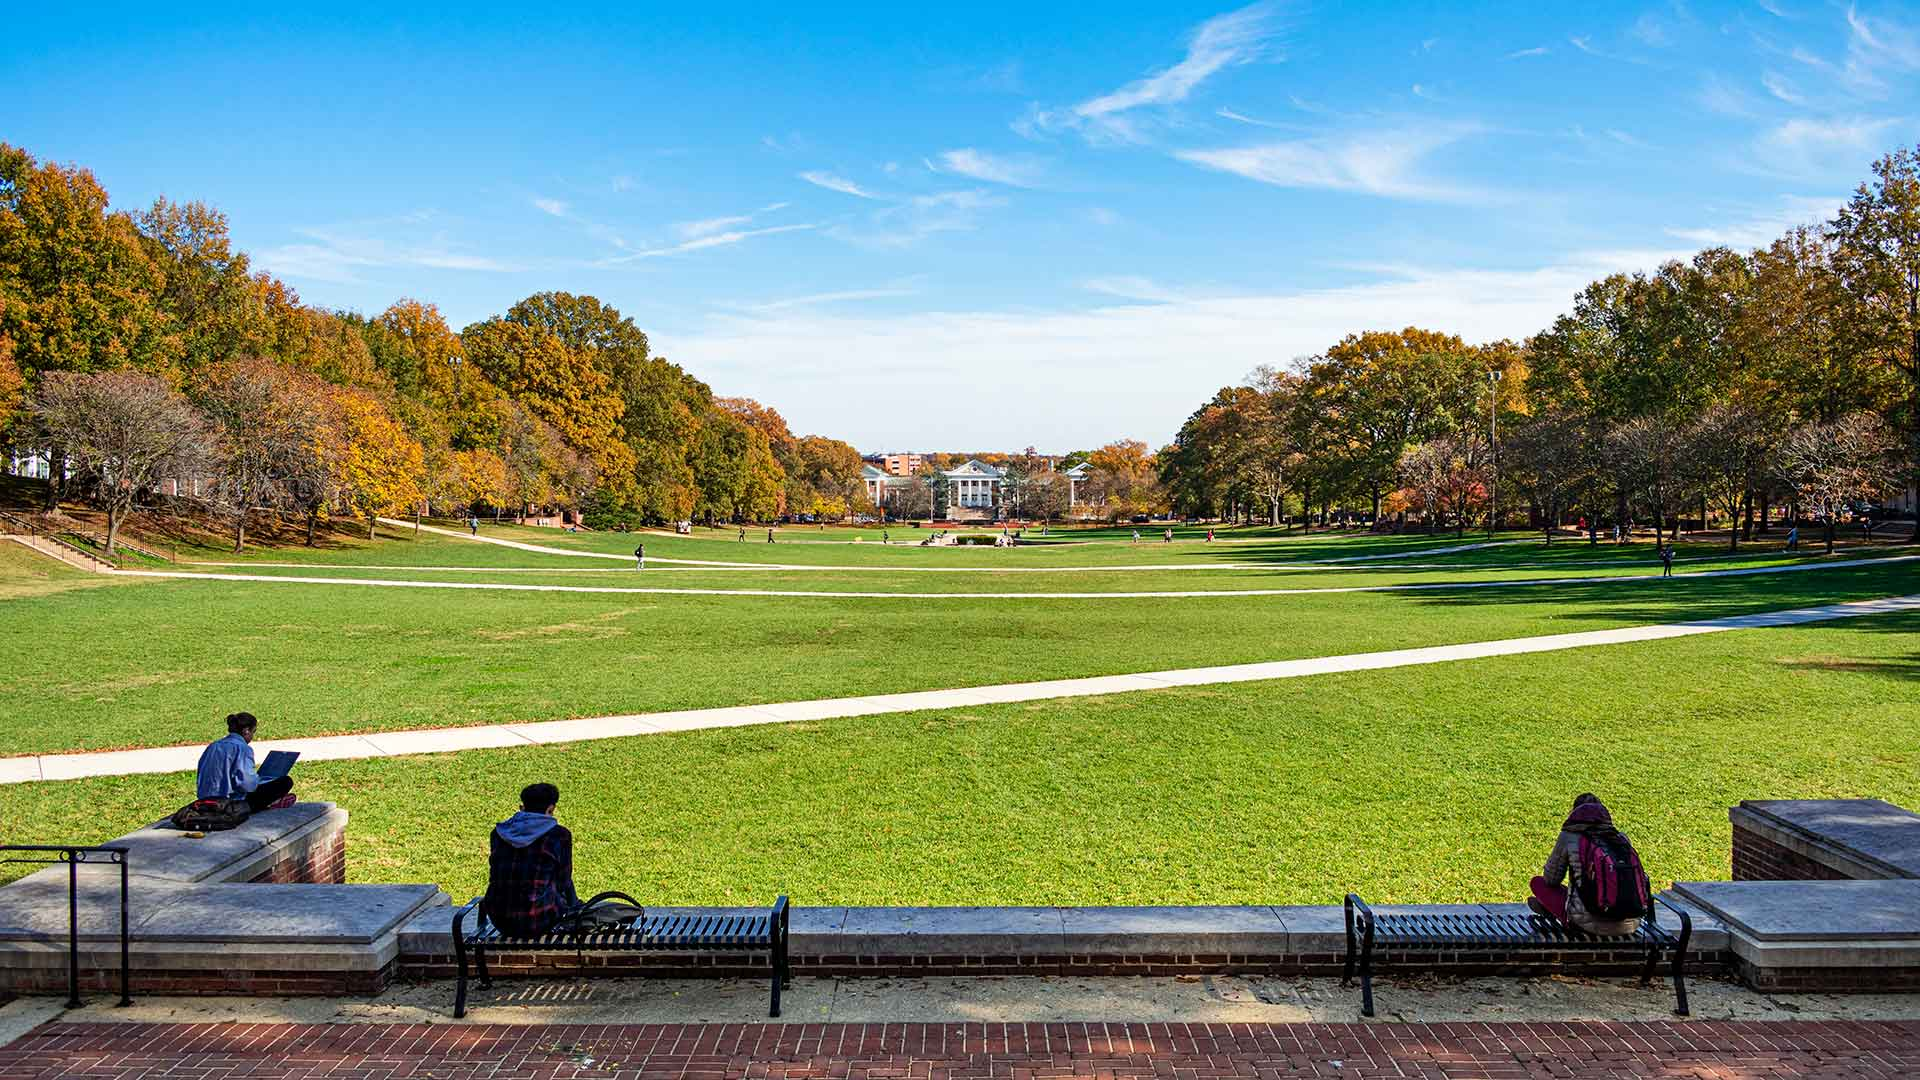 McKeldin Mall (From the view of McKeldin Library)